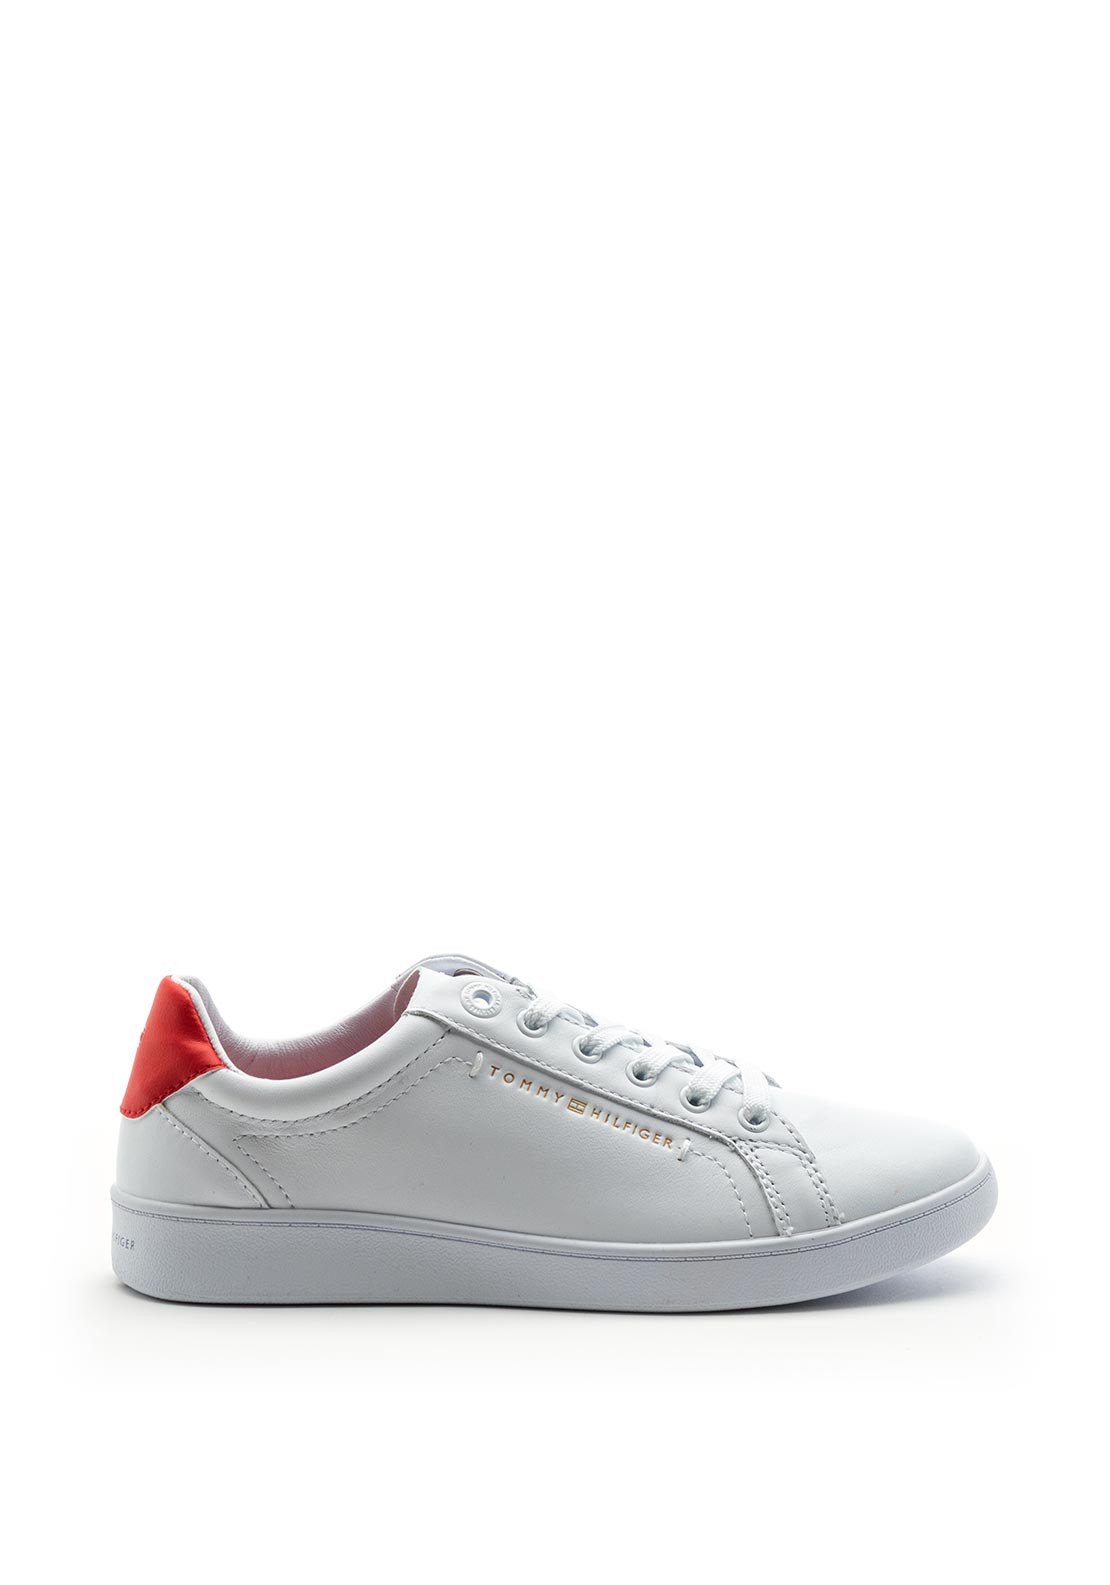 Tommy Hilfiger Womens Tennis Hybrid Leather Trainers, White